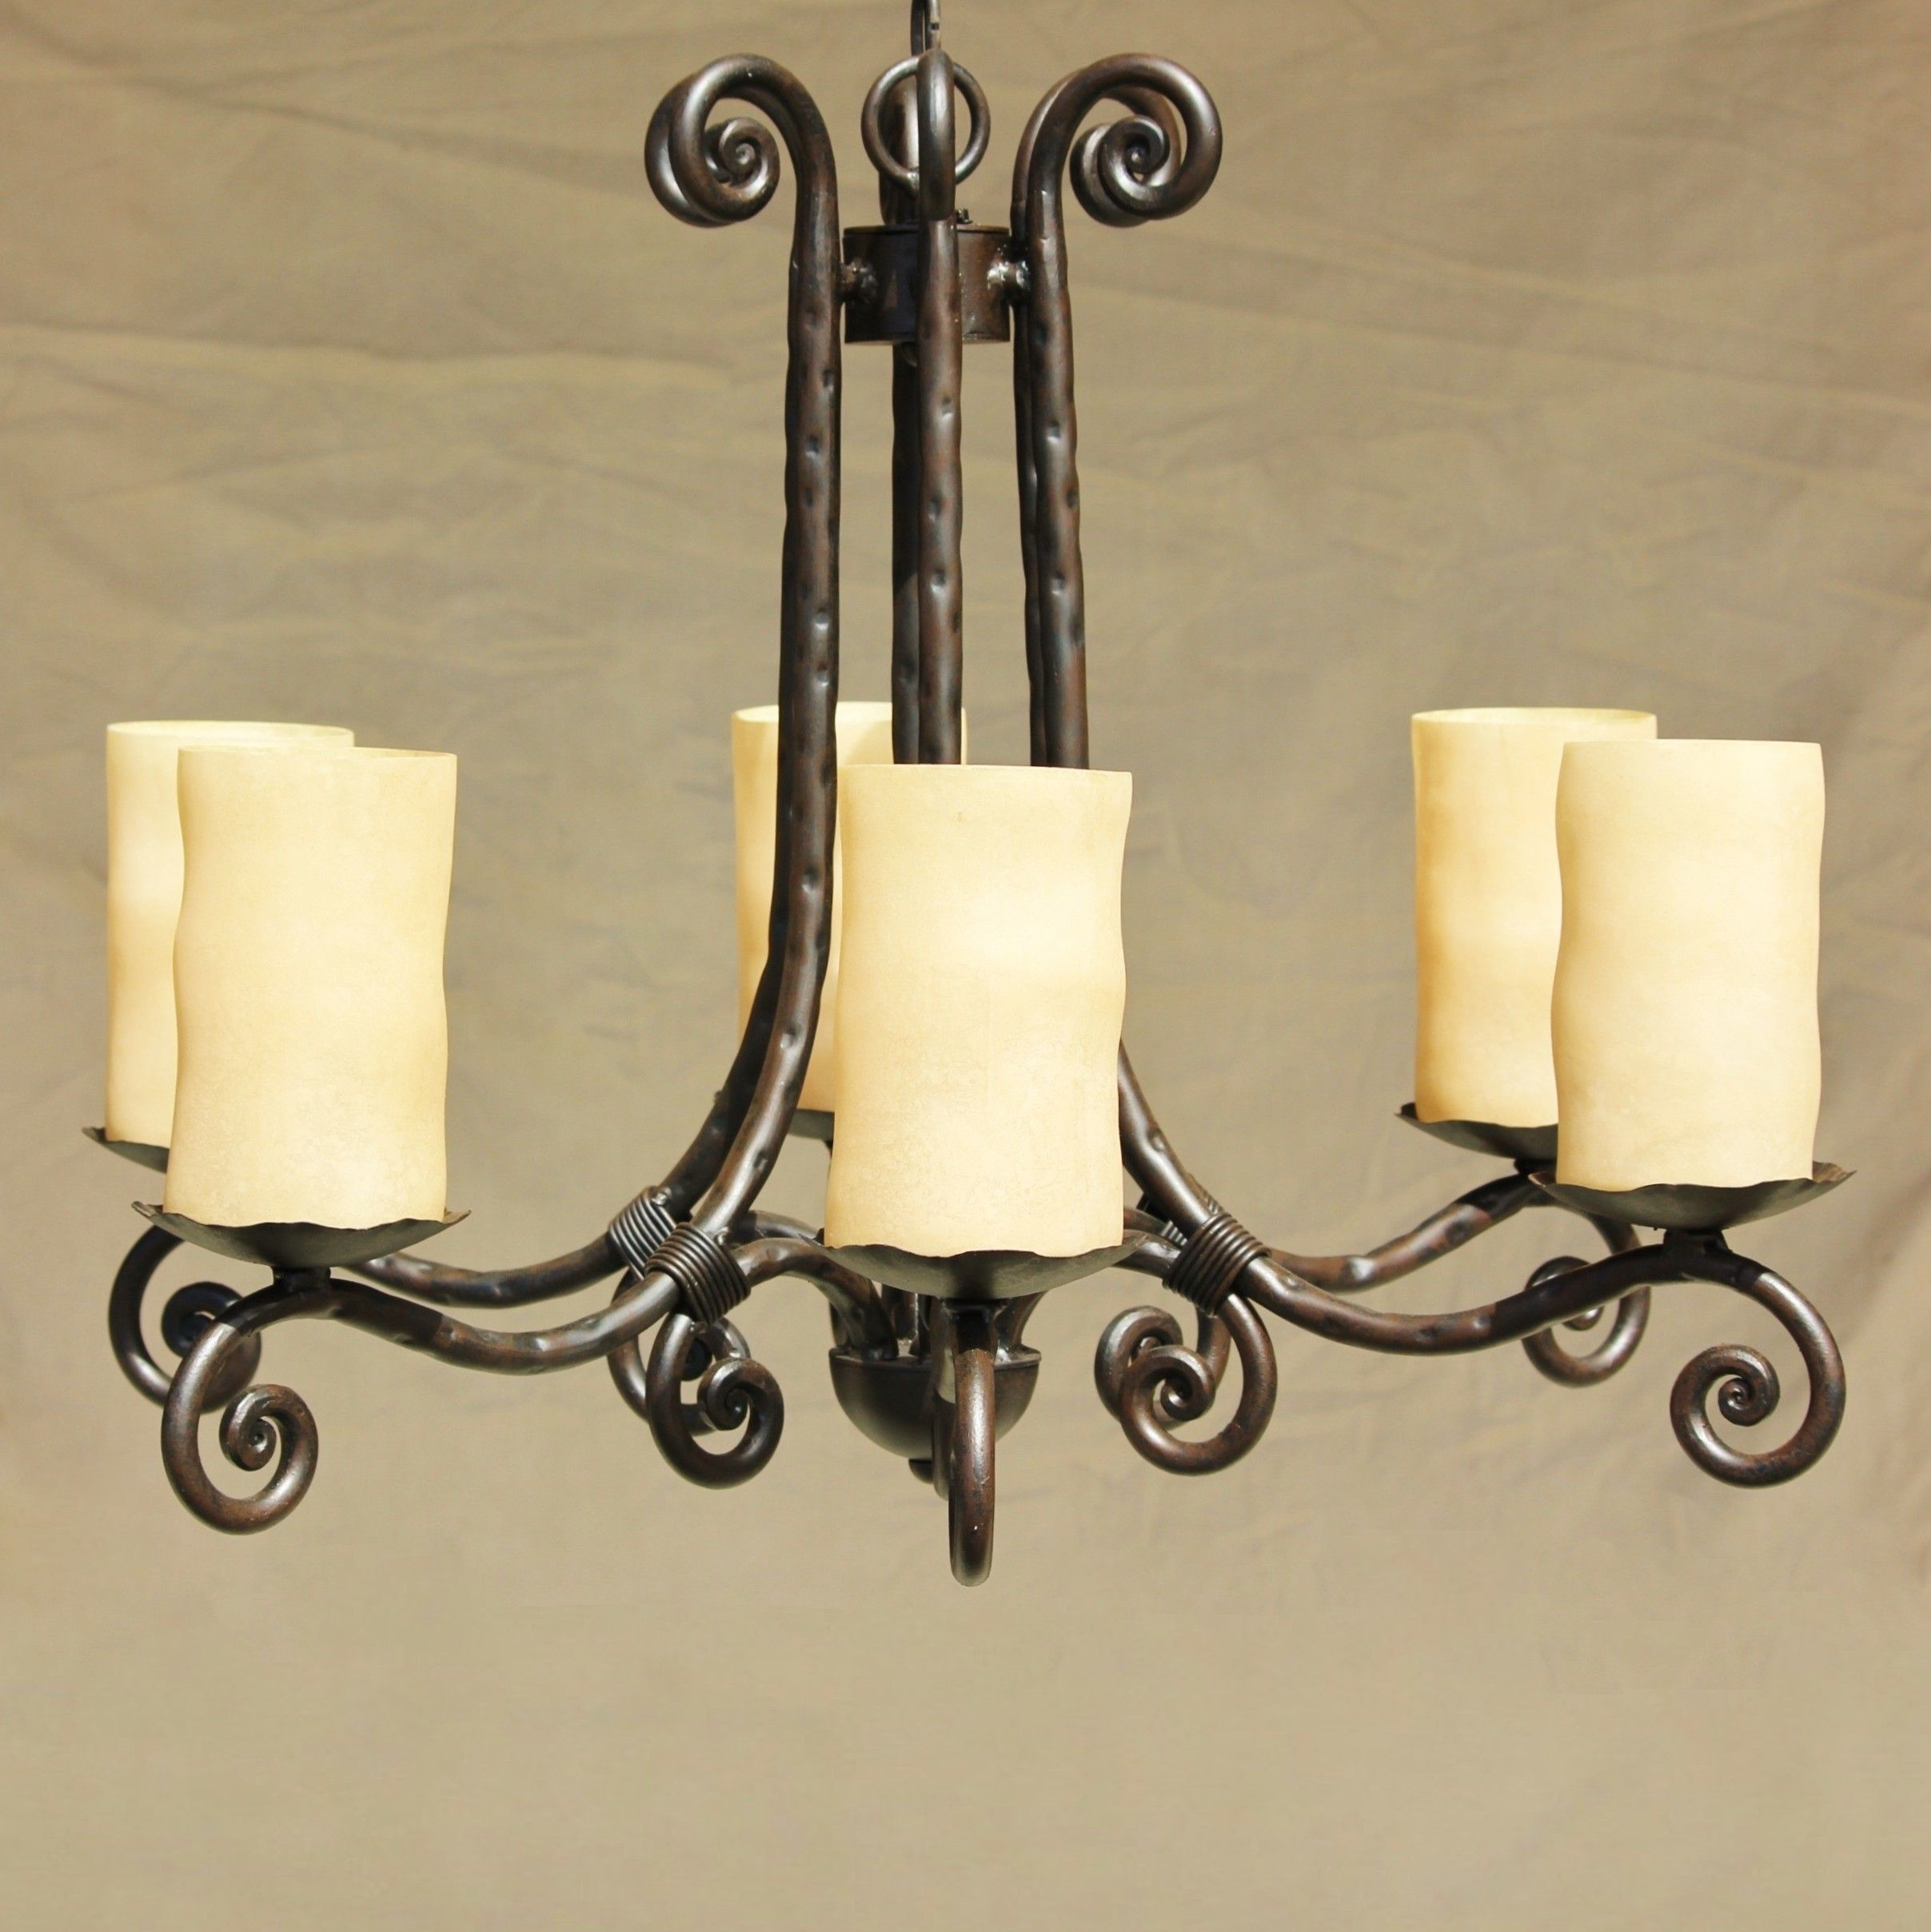 Tuscan Gothic Me val Chandelier Hand Forged Wrought Iron